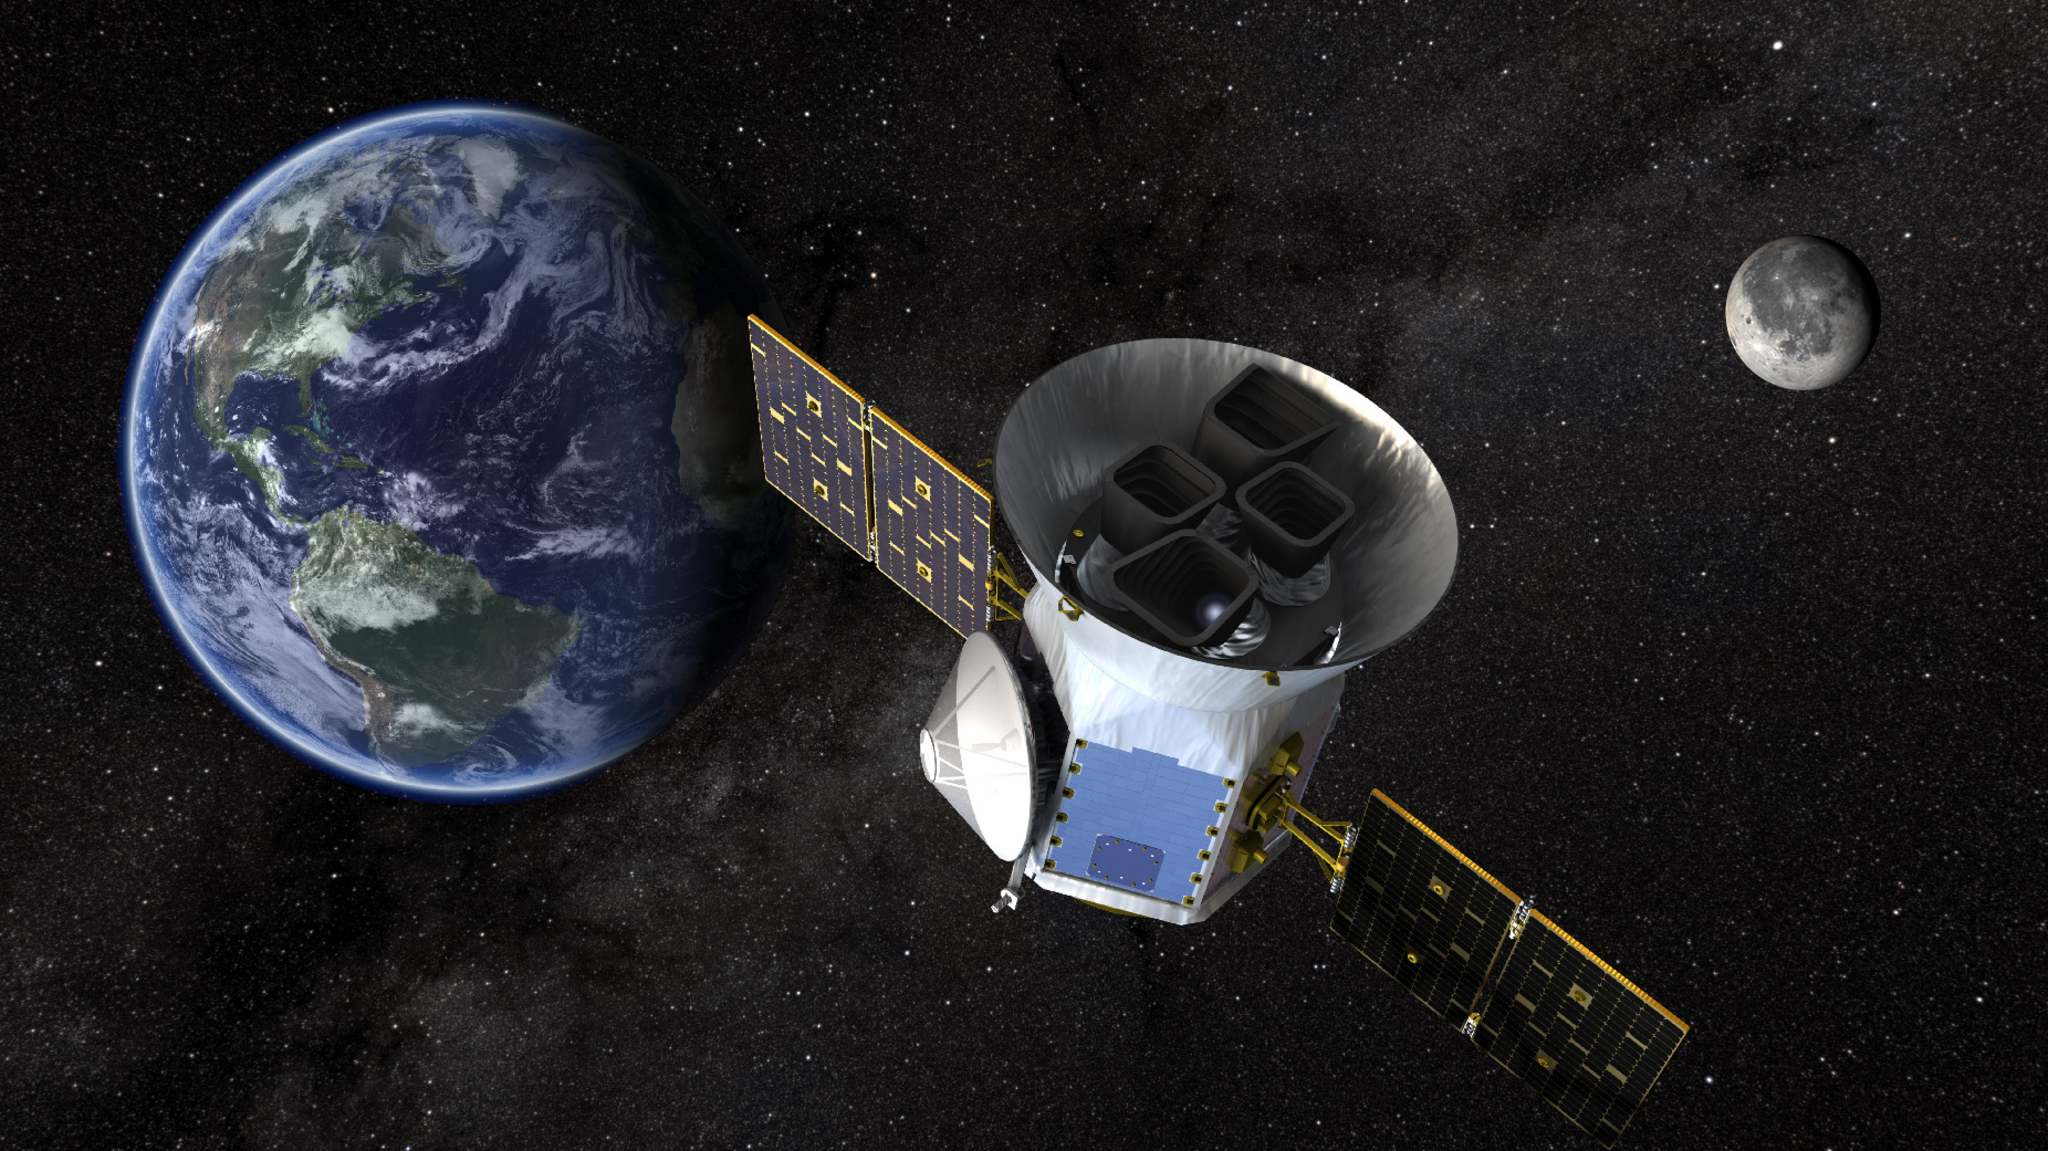 TESS Mission Added